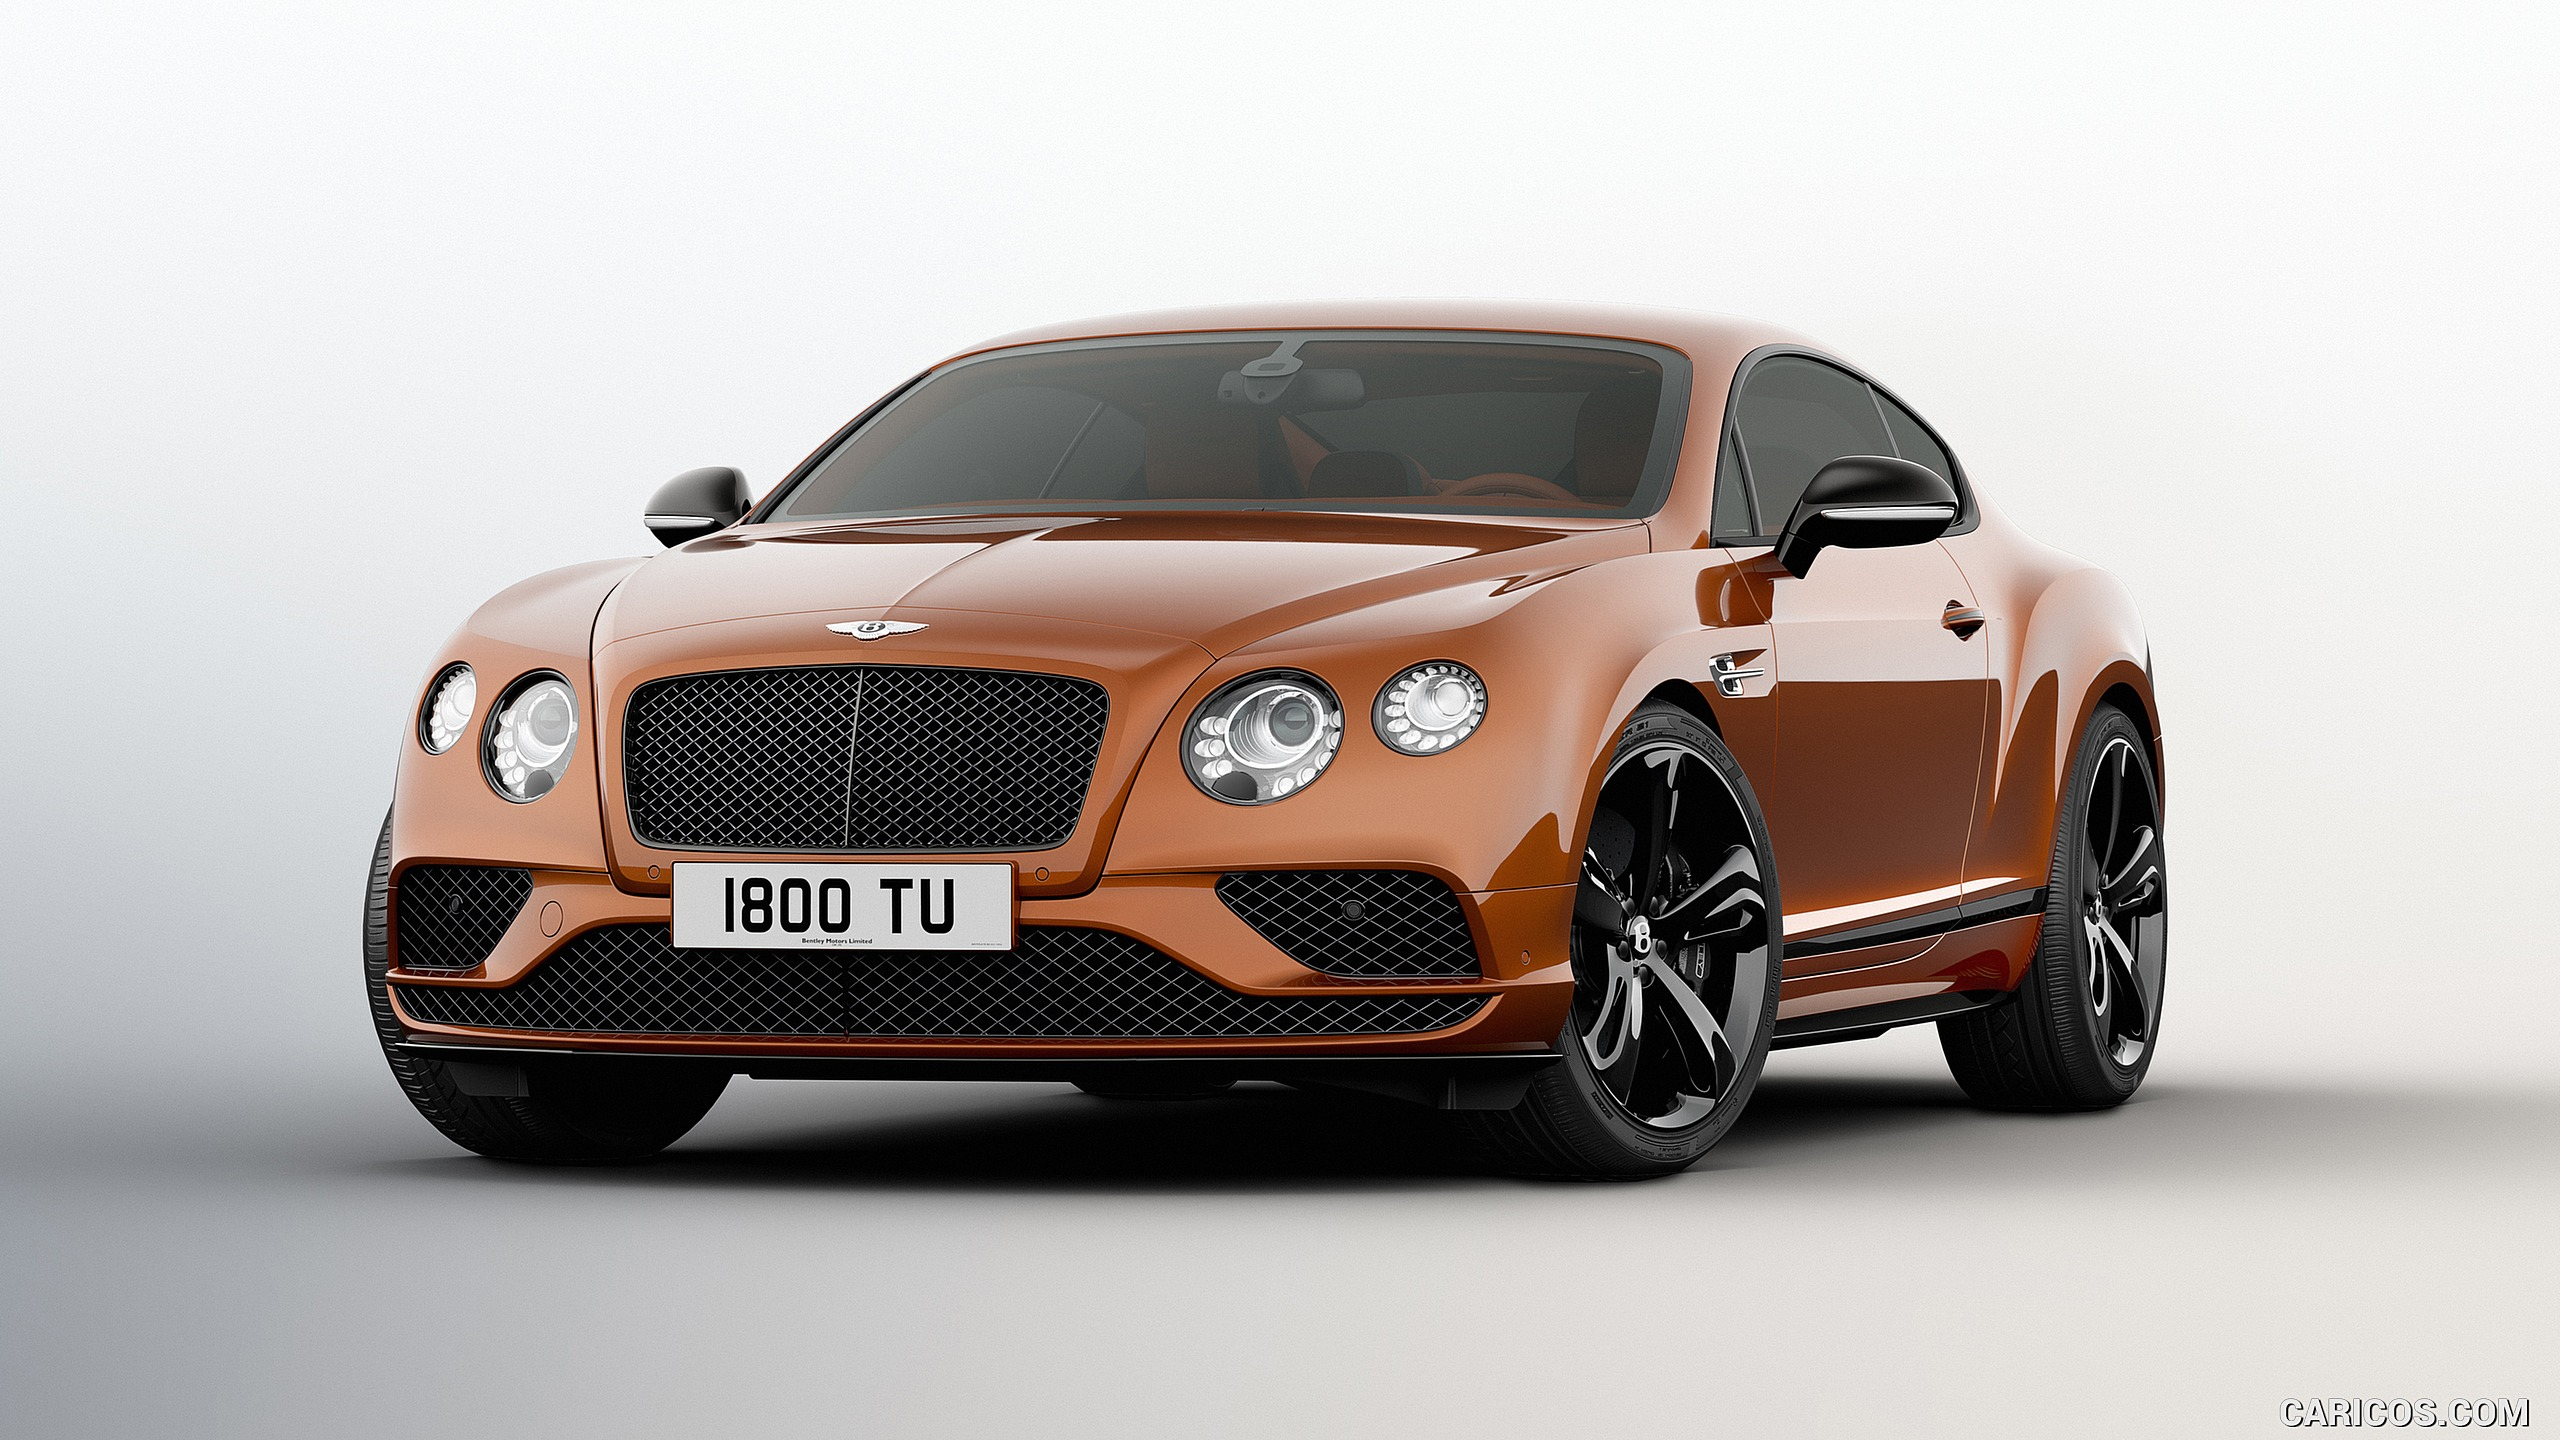 2560x1440 - Bentley Continental GT Wallpapers 35